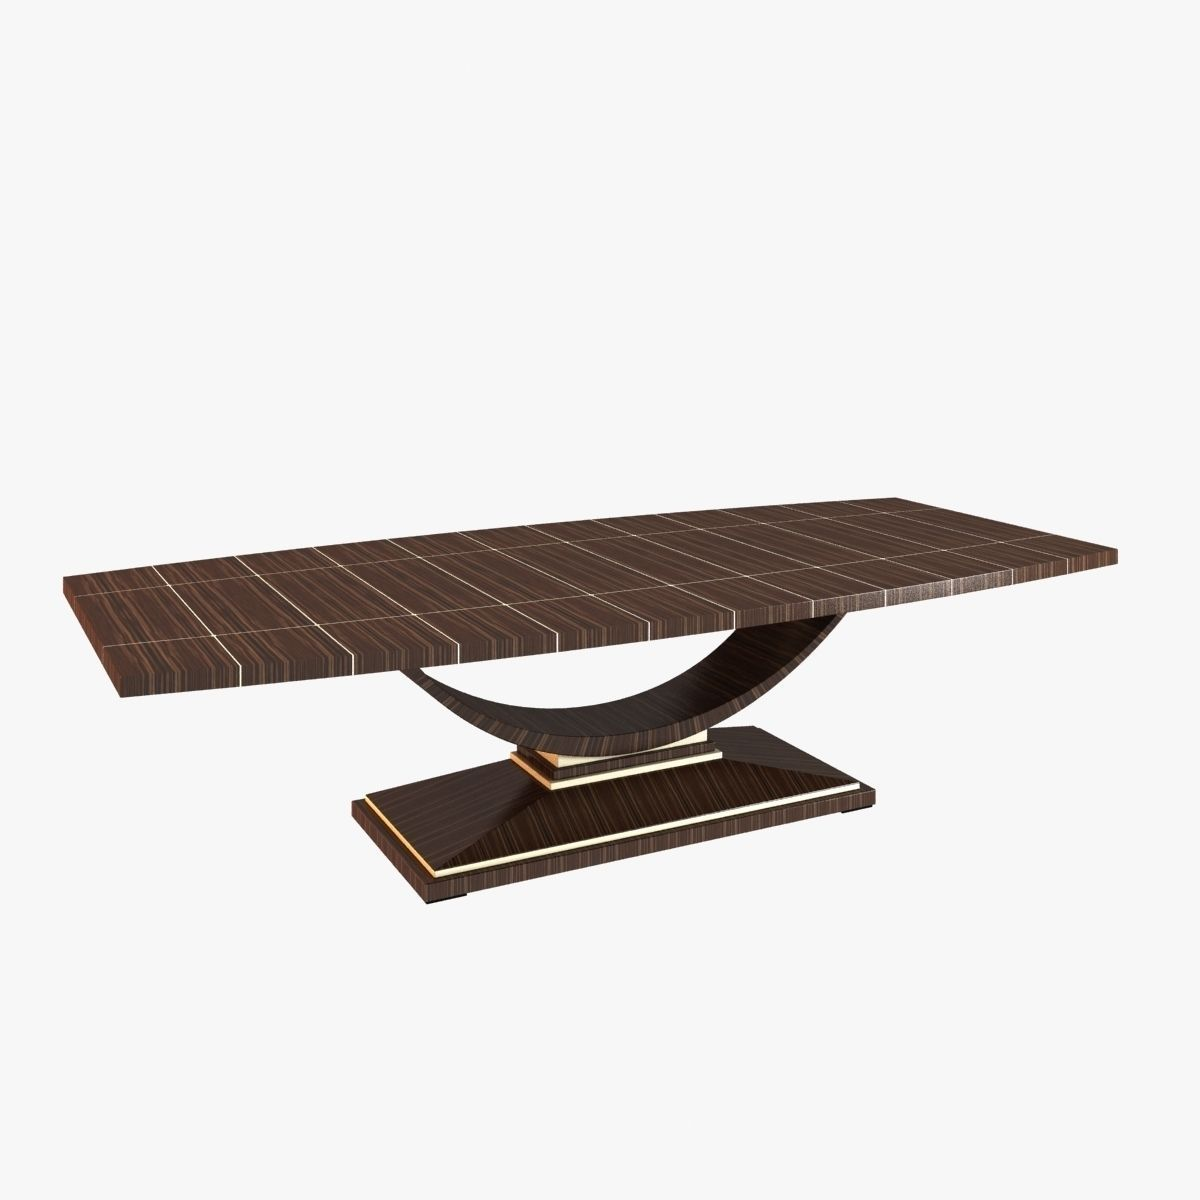 Colombo Stile Decodieci Dinning Table